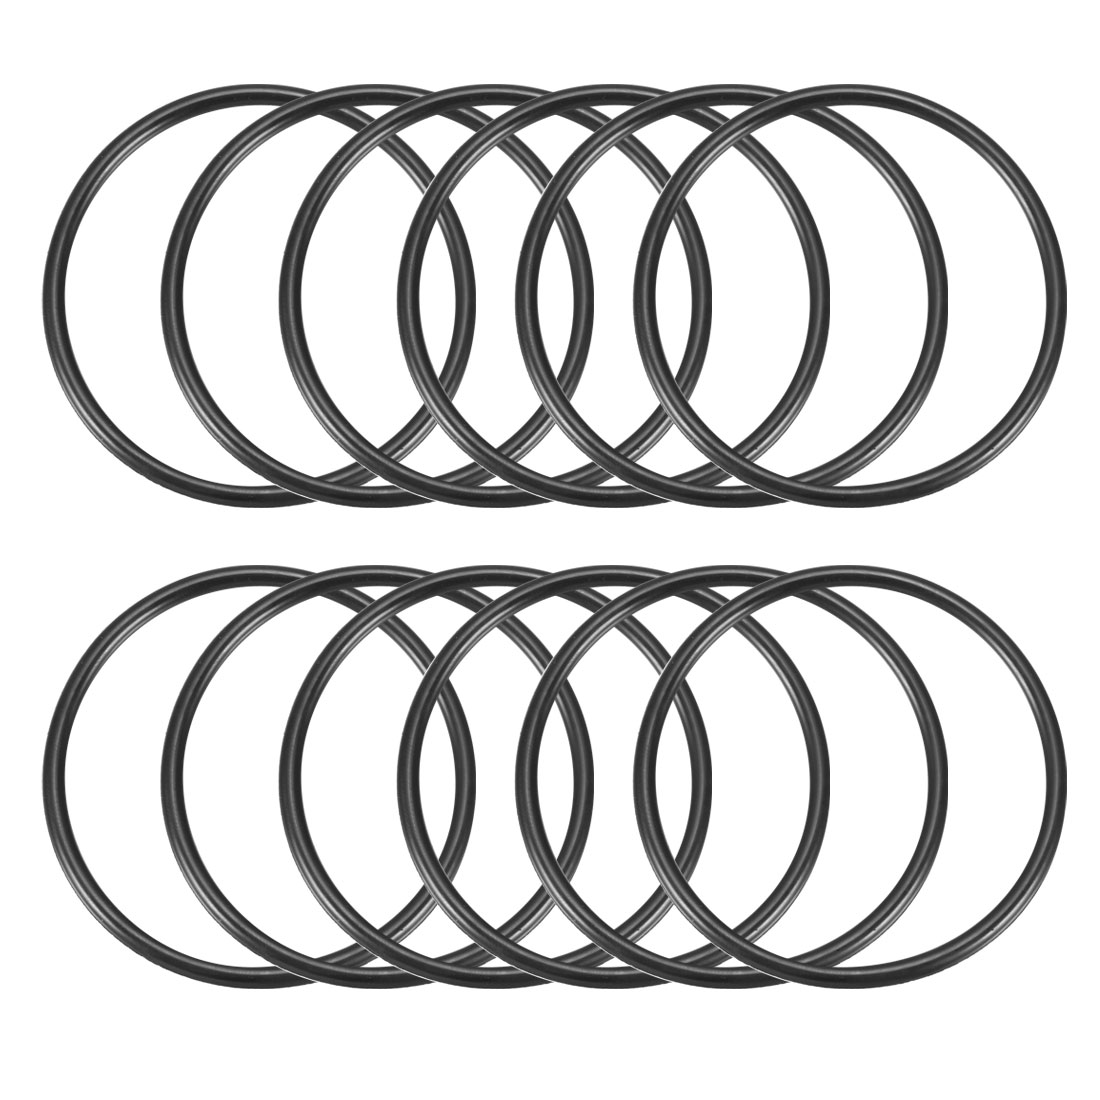 12 Pcs 65mm x 58mm x 3.5mm Rubber Oil Sealing O Rings for Mechanical